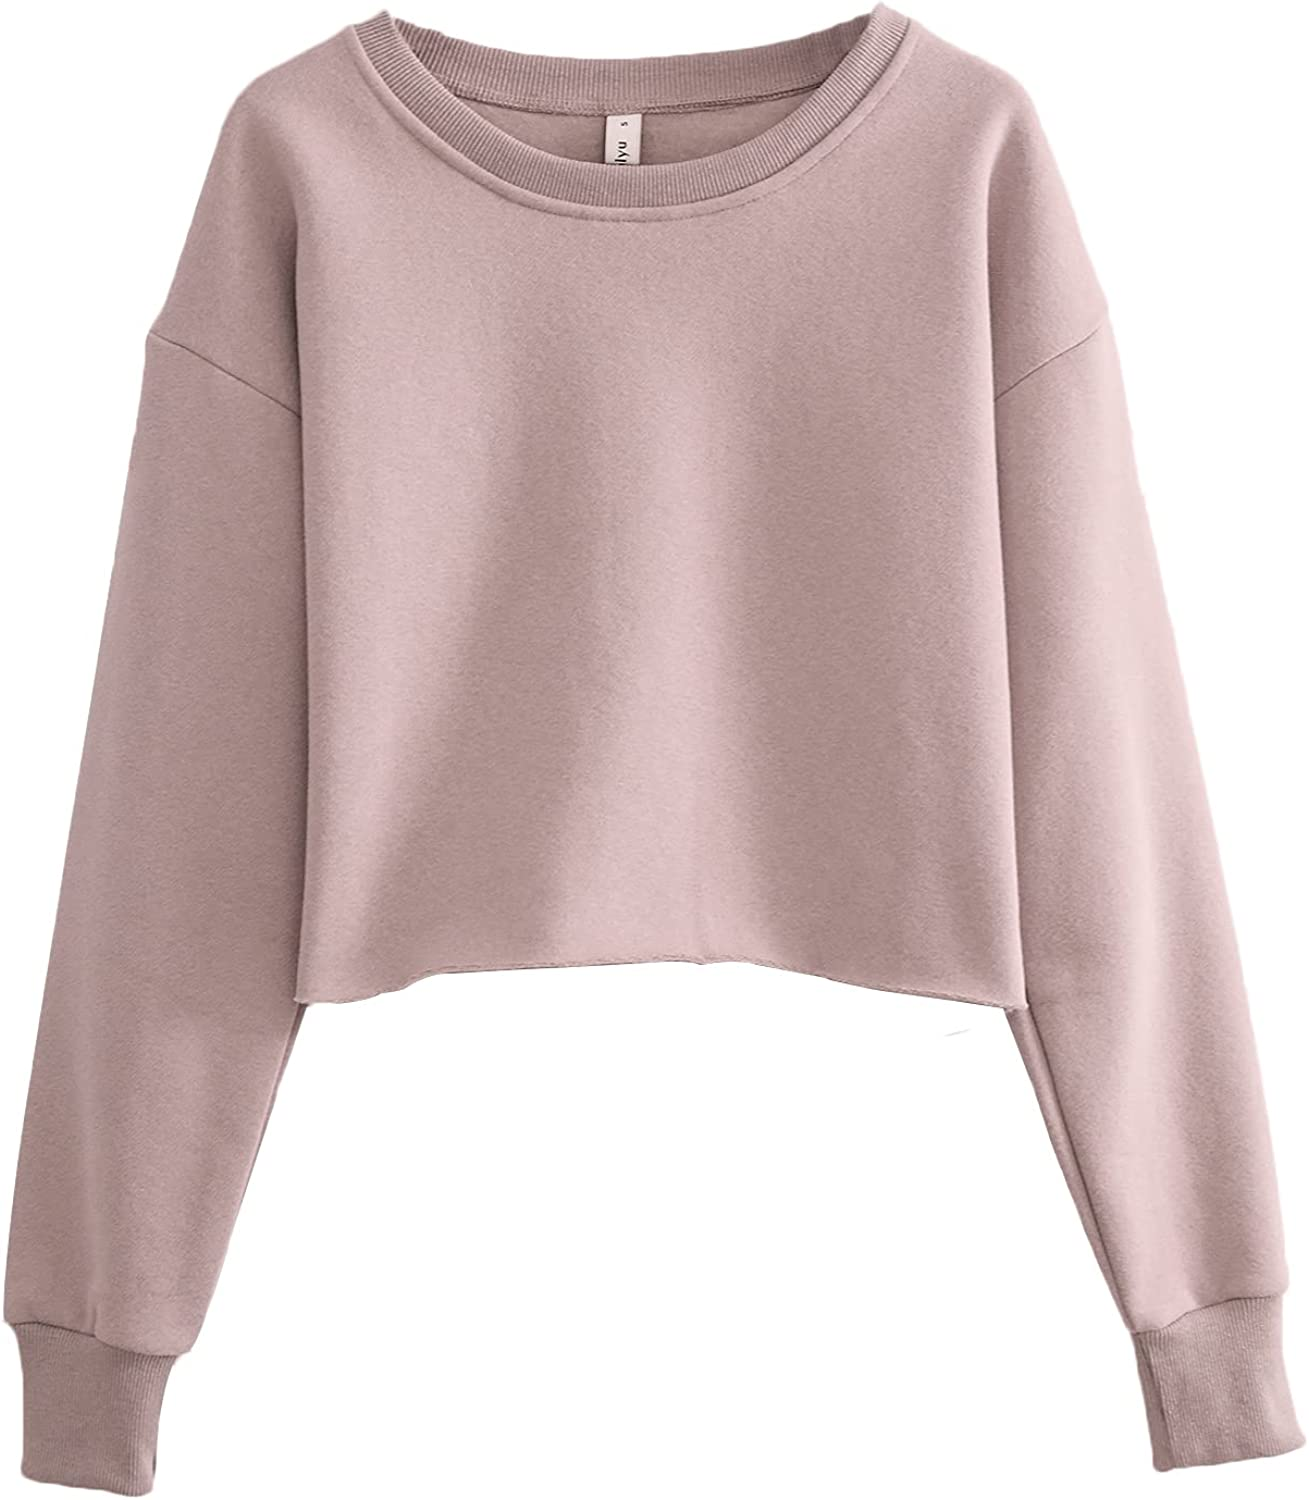 Amazhiyu Women's Pullover Cropped Hoodie Casual Fleece Crop Top for Fall Winter